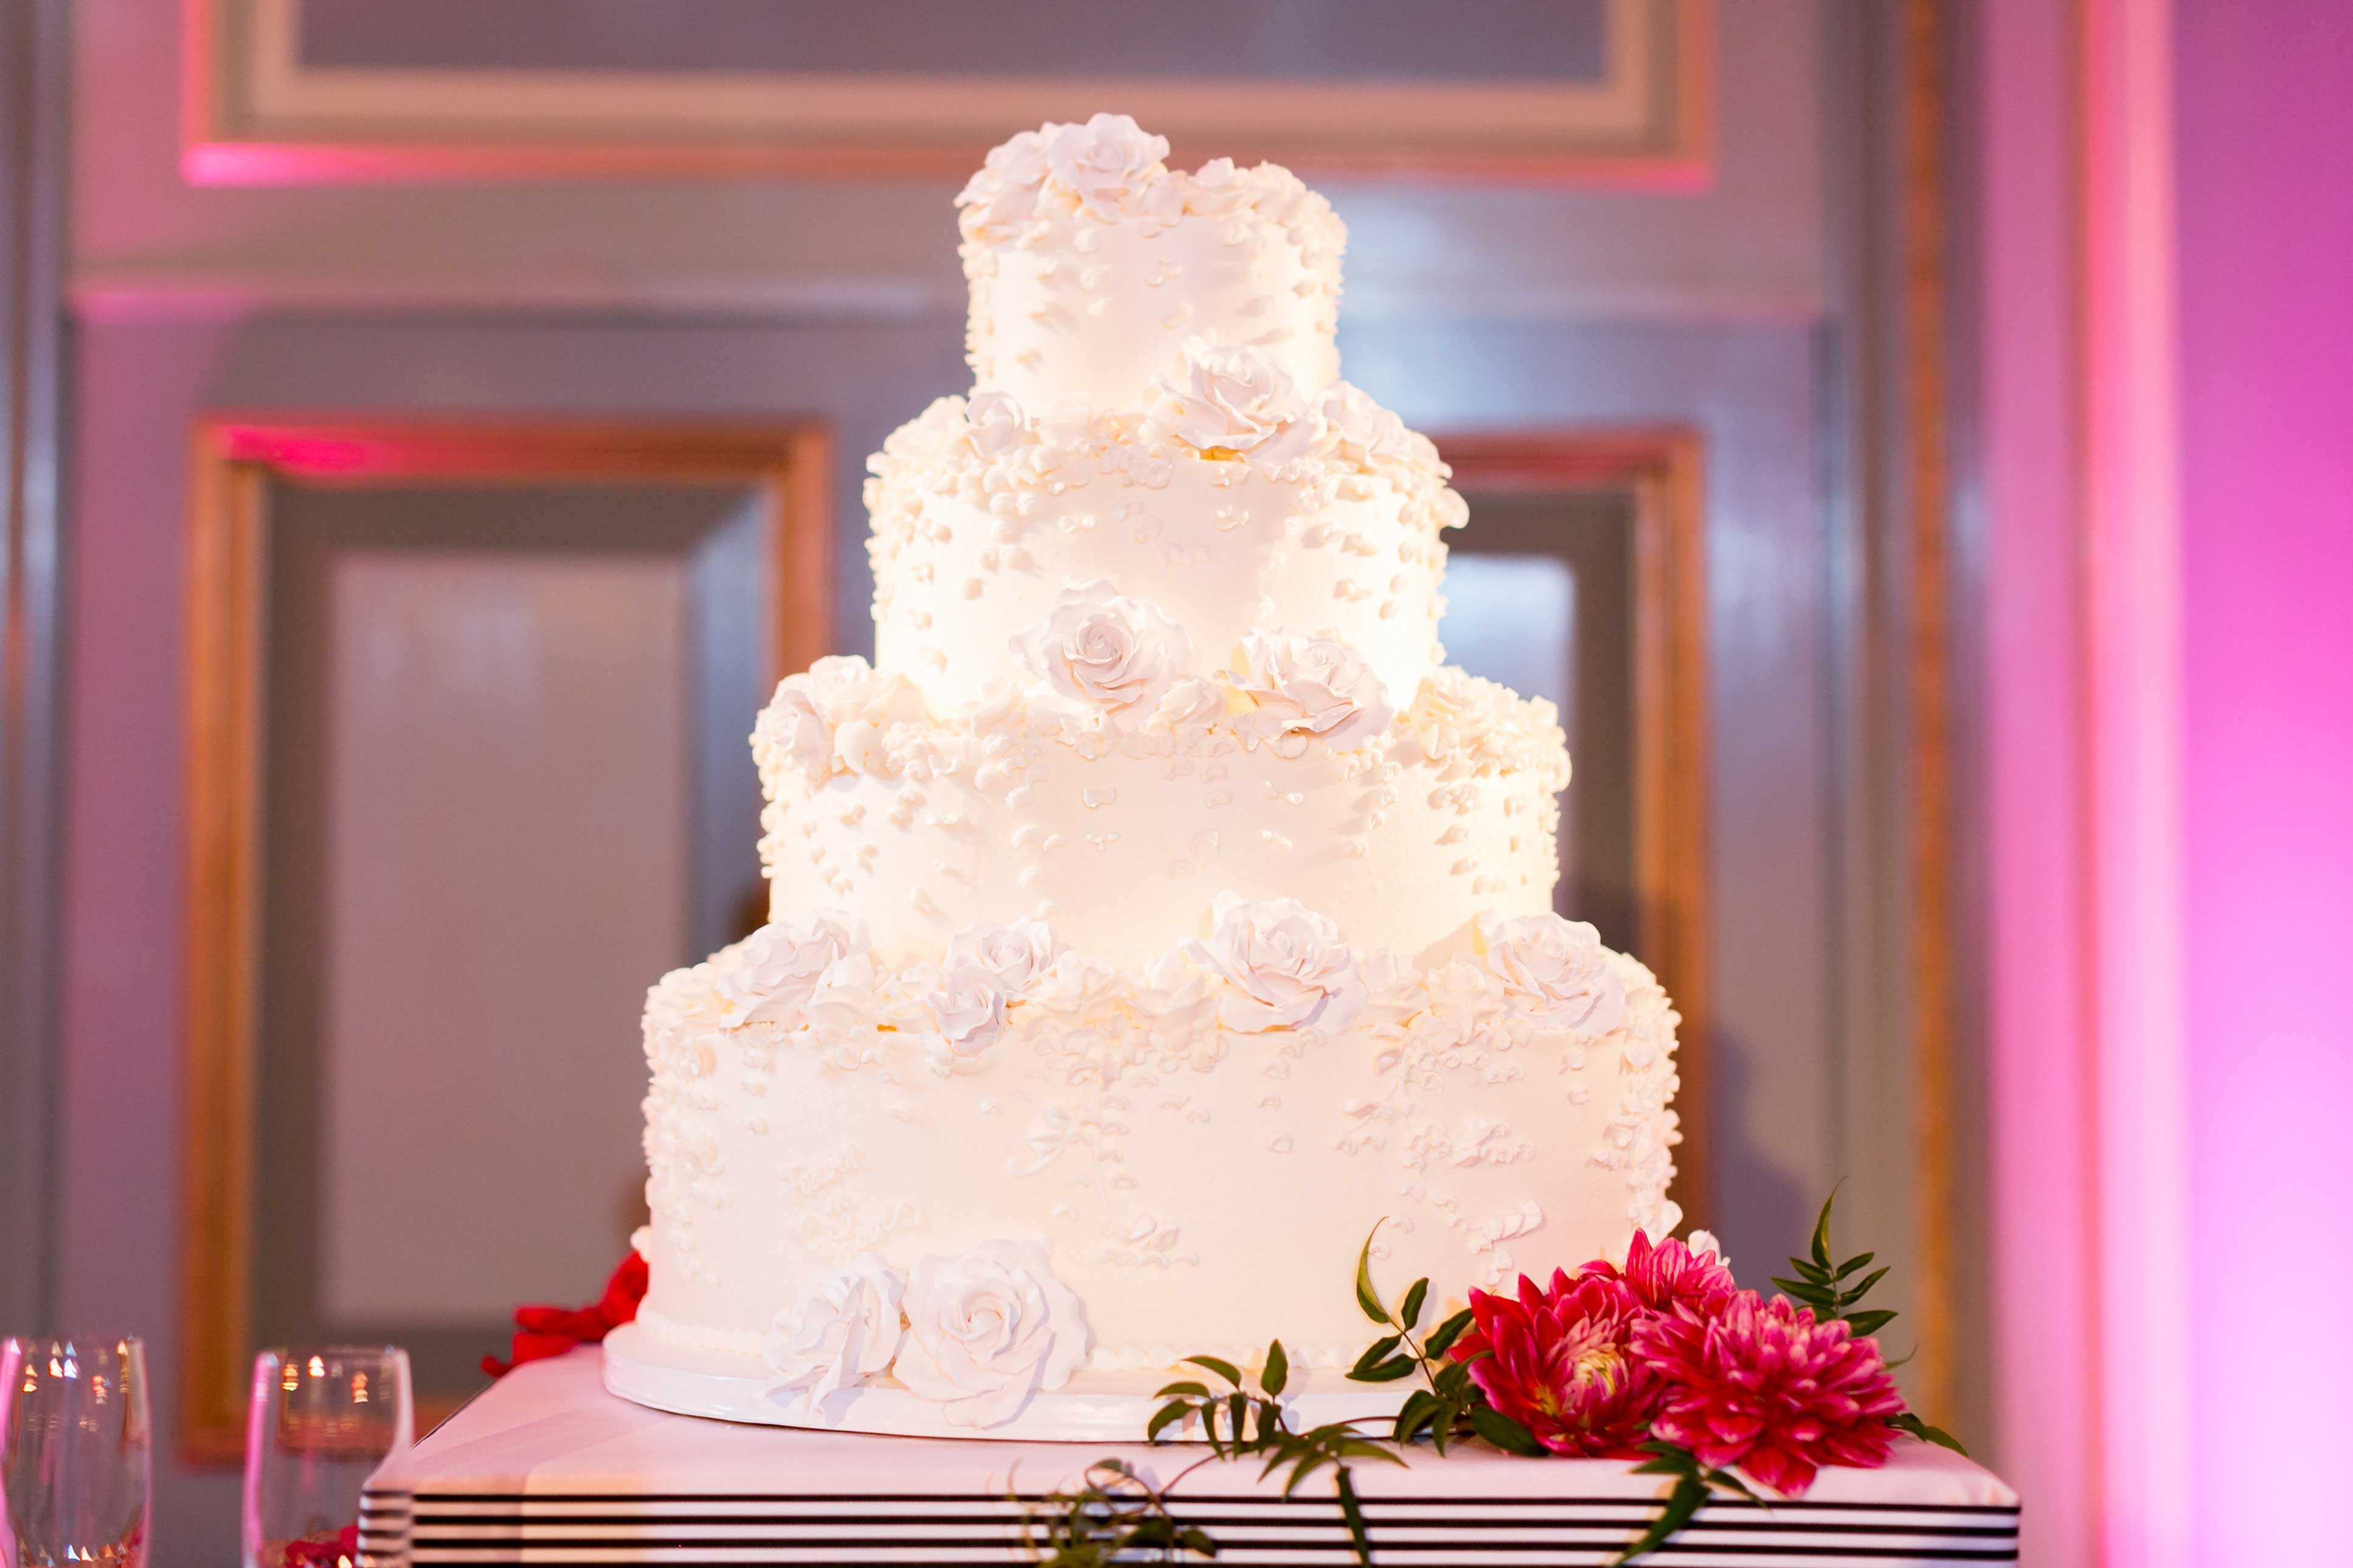 Classic white wedding cake with flower decorations